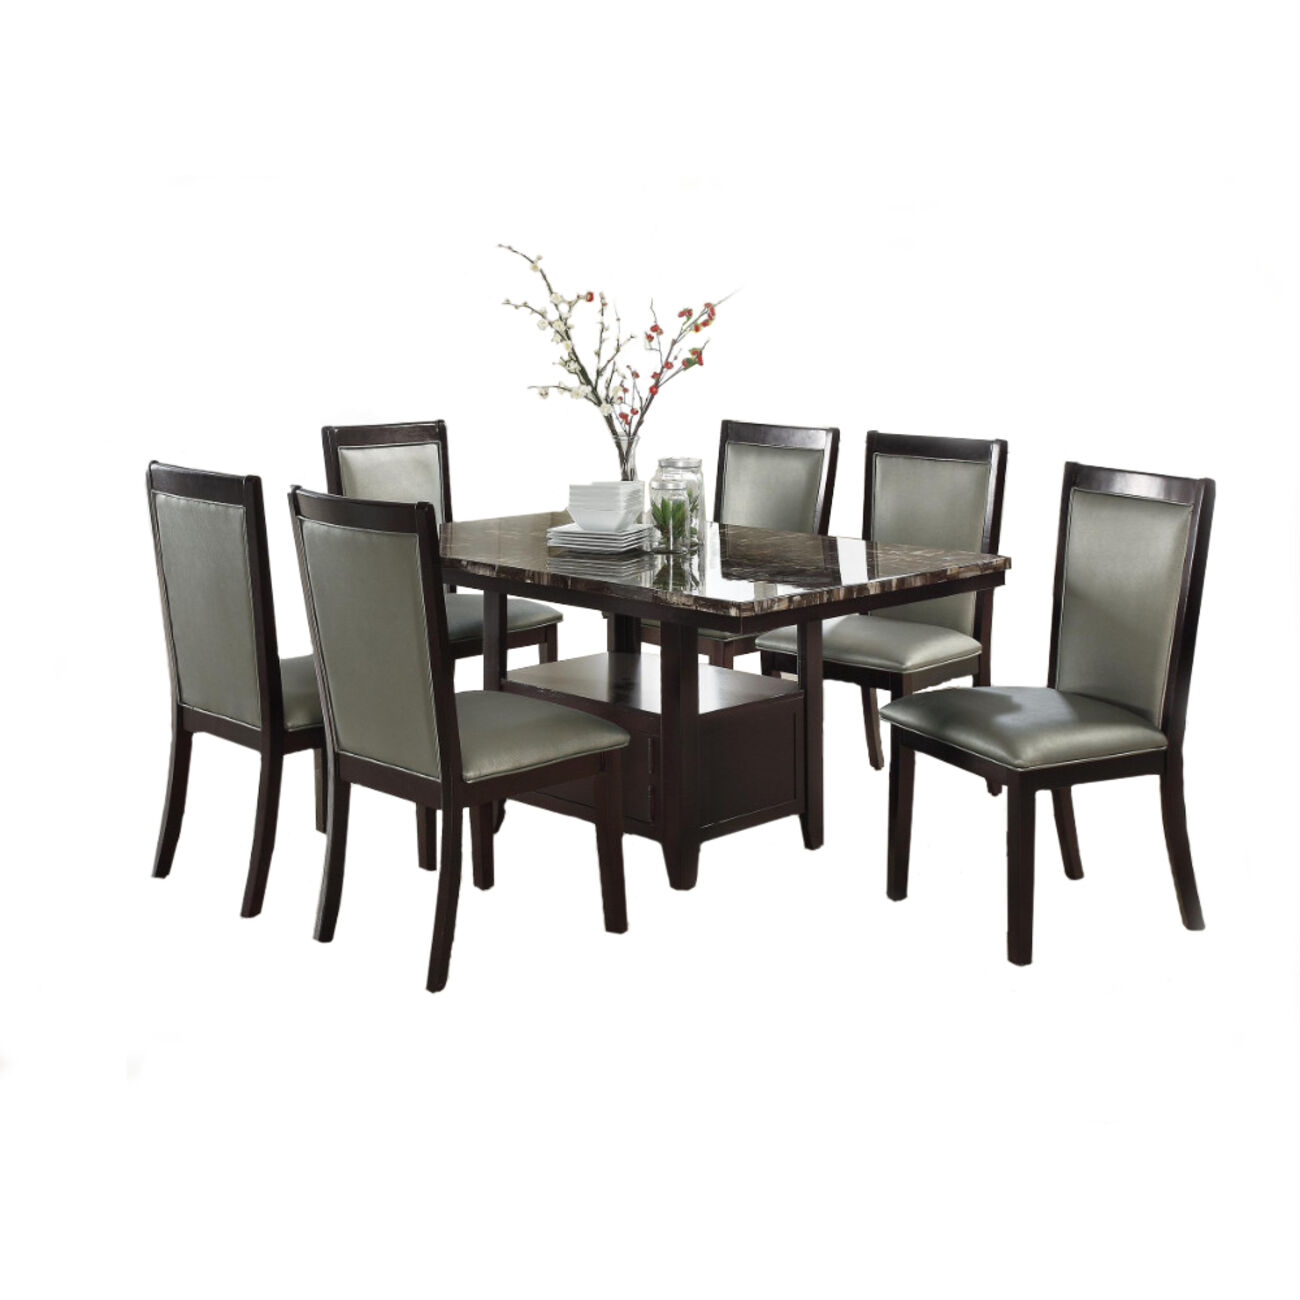 Wooden Dining Table With Spacious Bottom Storage Dark Brown